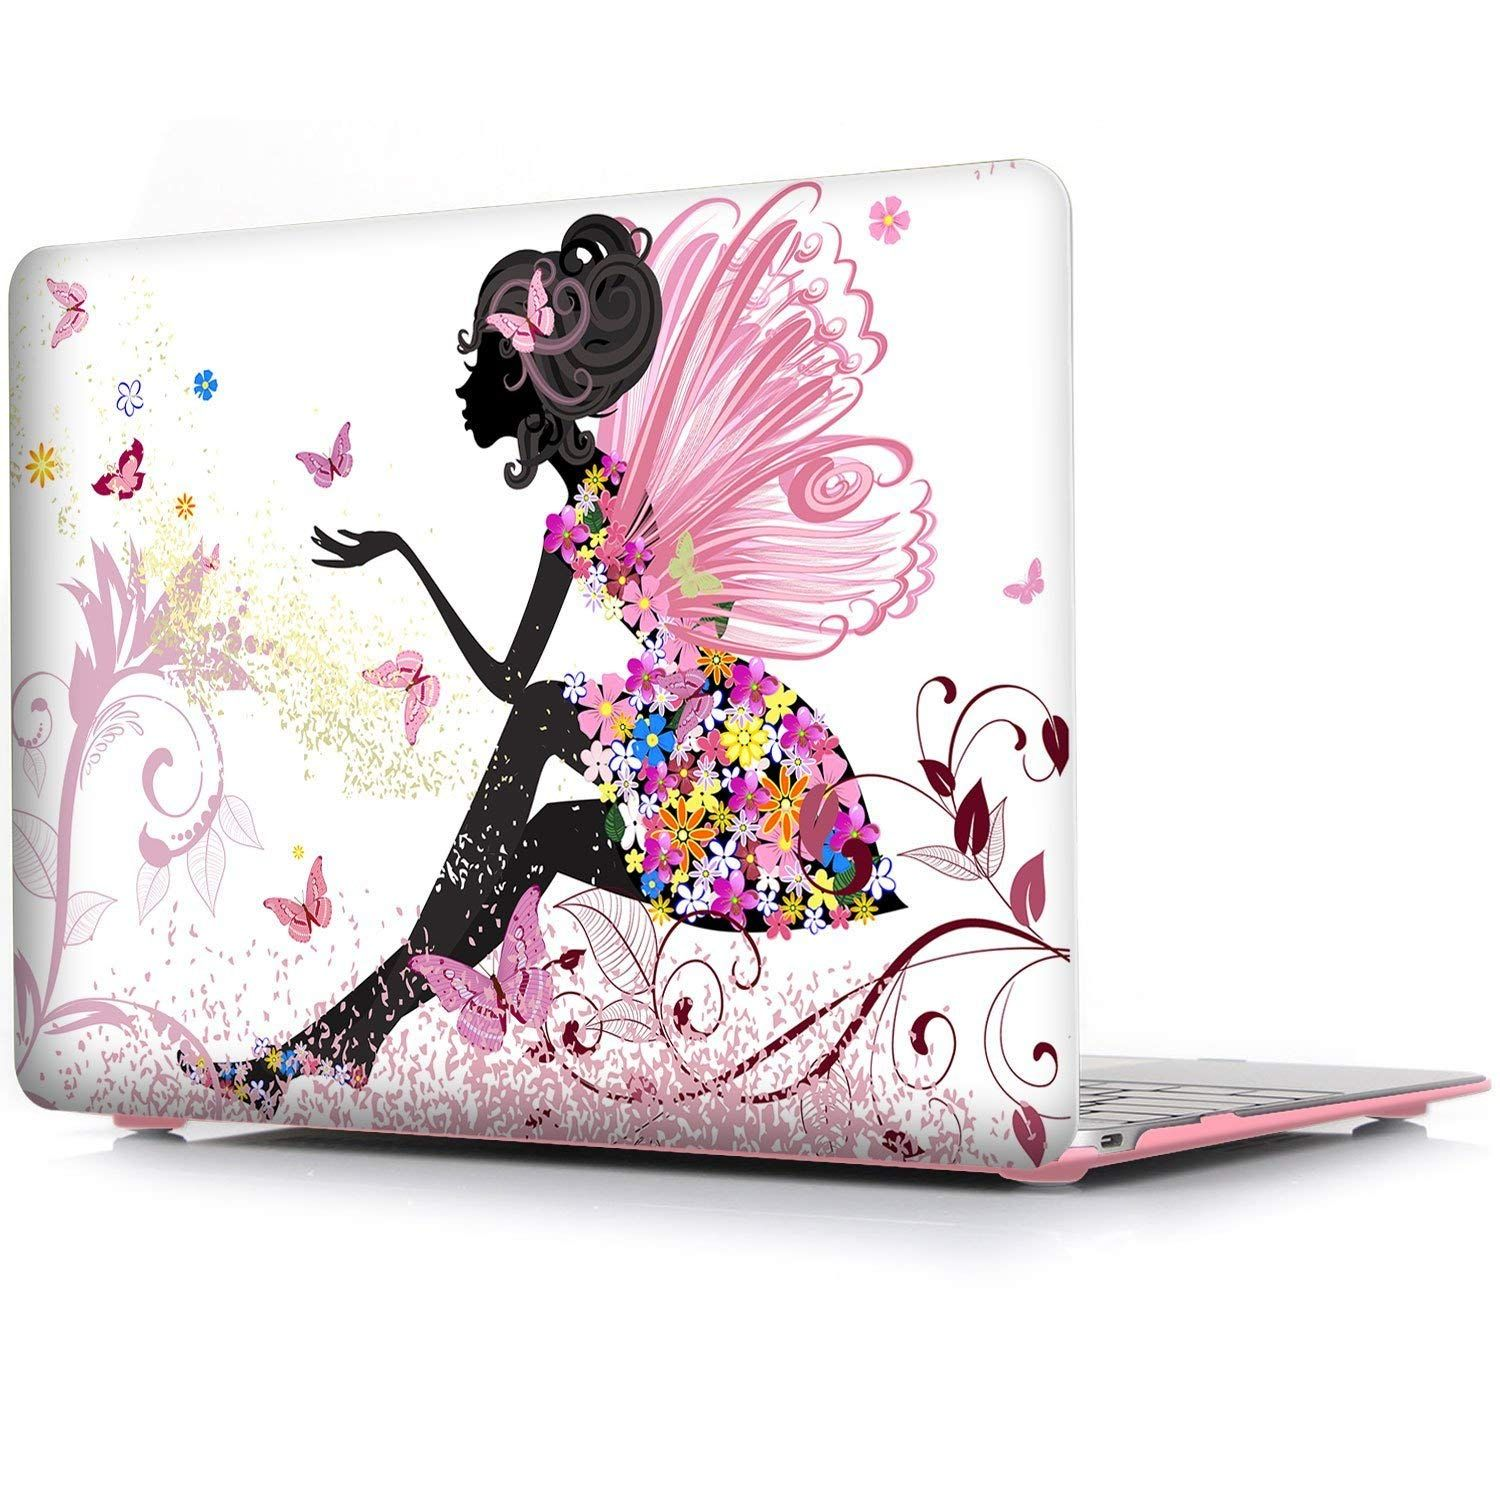 Macbook air 13 inch case icasso rubber coated